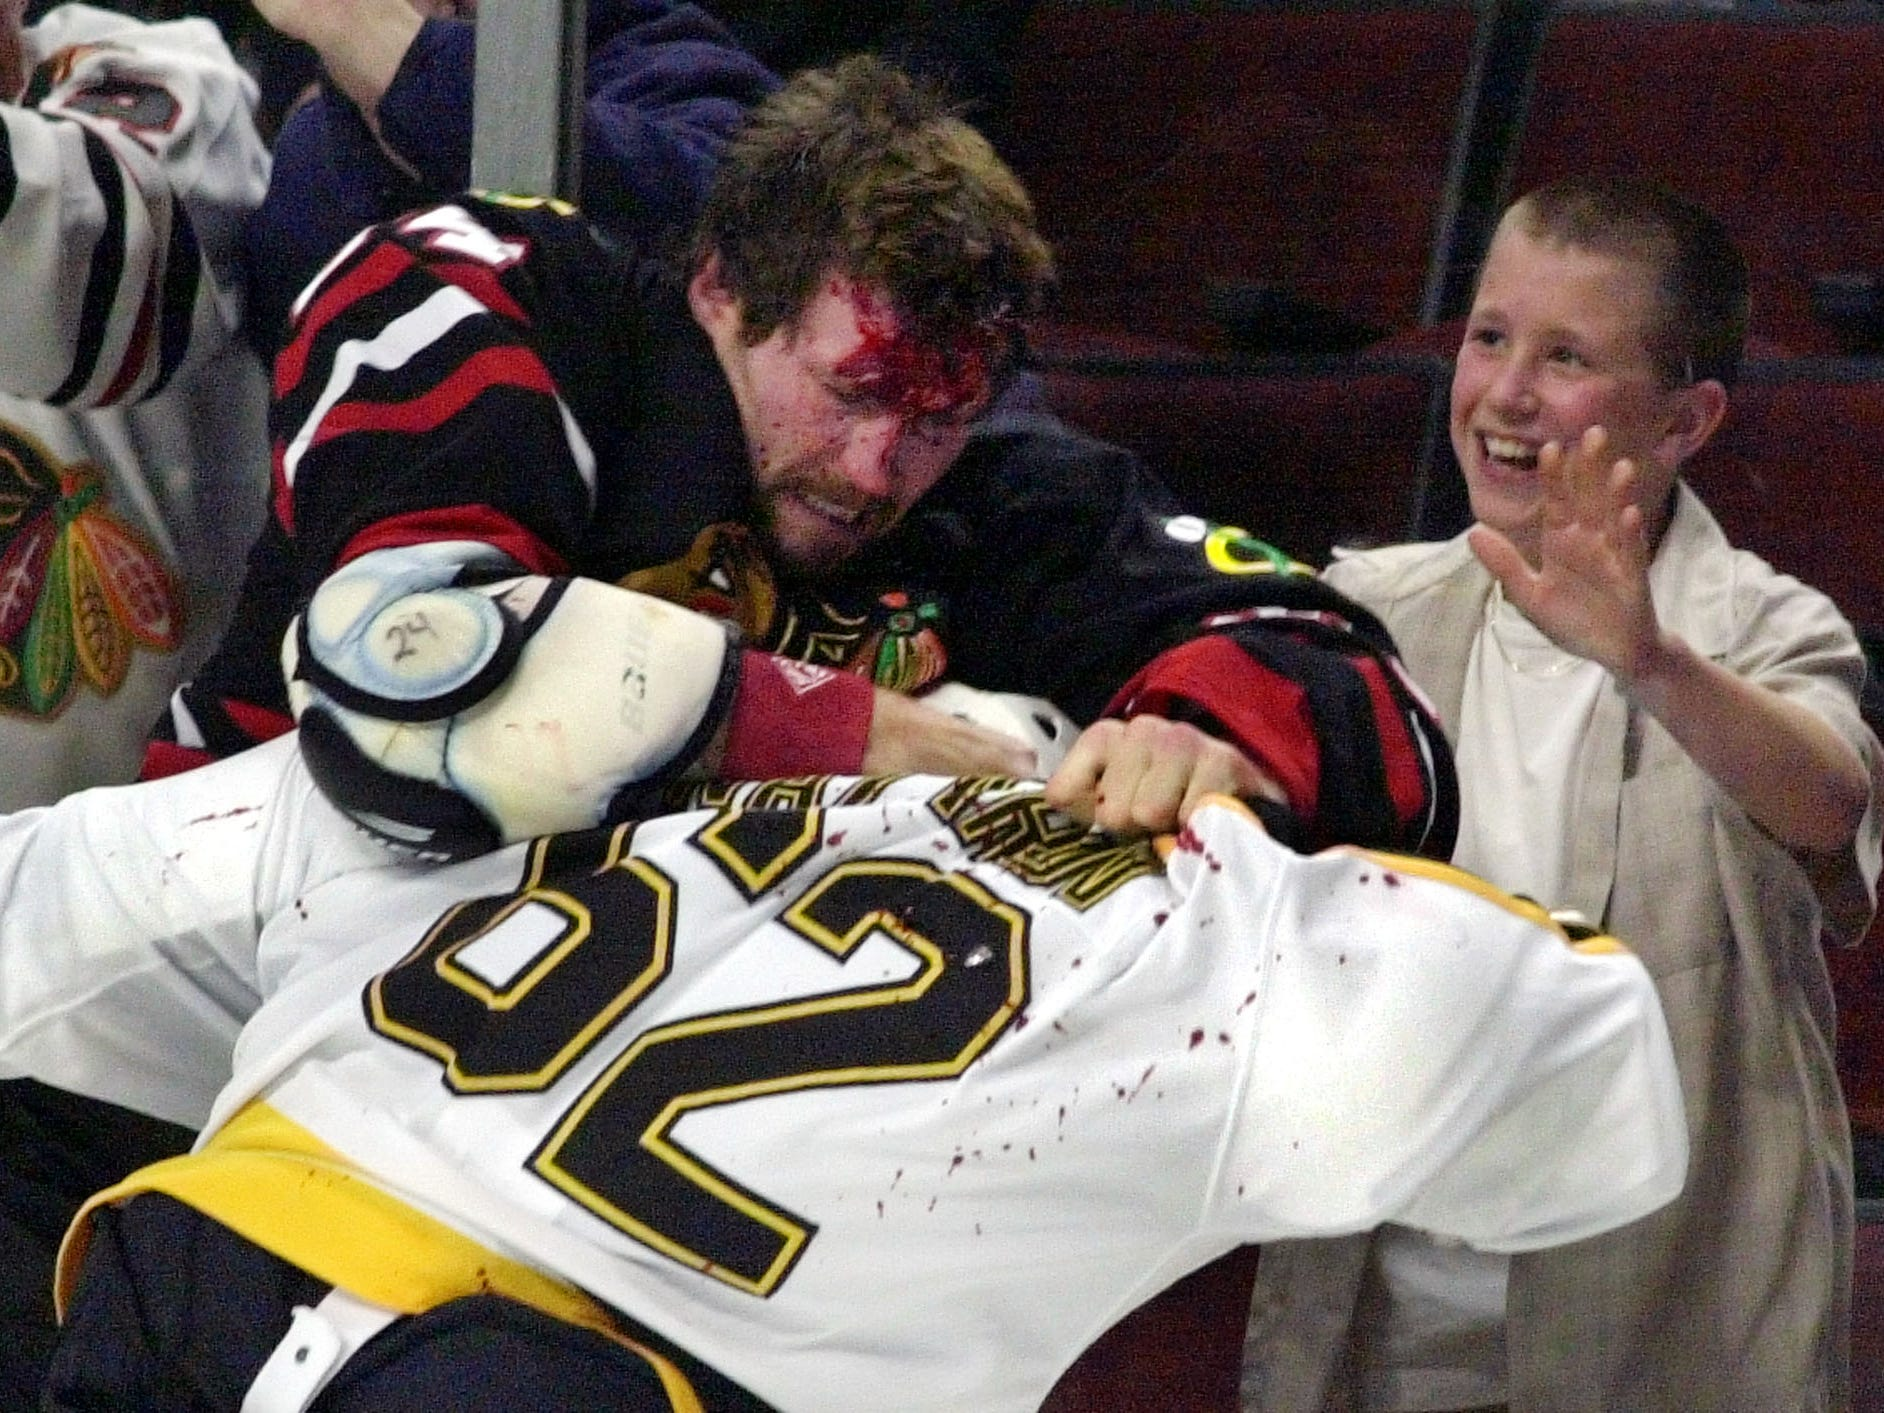 FILE - In this Oct. 28, 2001 file photo, Chicago Blackhawks' Bob Probert, left, and Boston Bruins' Andrei Nazarov mix it up along the boards during a first period fight in Chicago. Enforcers, goons, whatever you want to call them, players like Bob Probert and Derek Boogaard made careers from dishing out and taking punishing hits. That job is sure to come under added scrutiny after the sudden death of Boogaard, five months after he suffered a season-ending concussion.